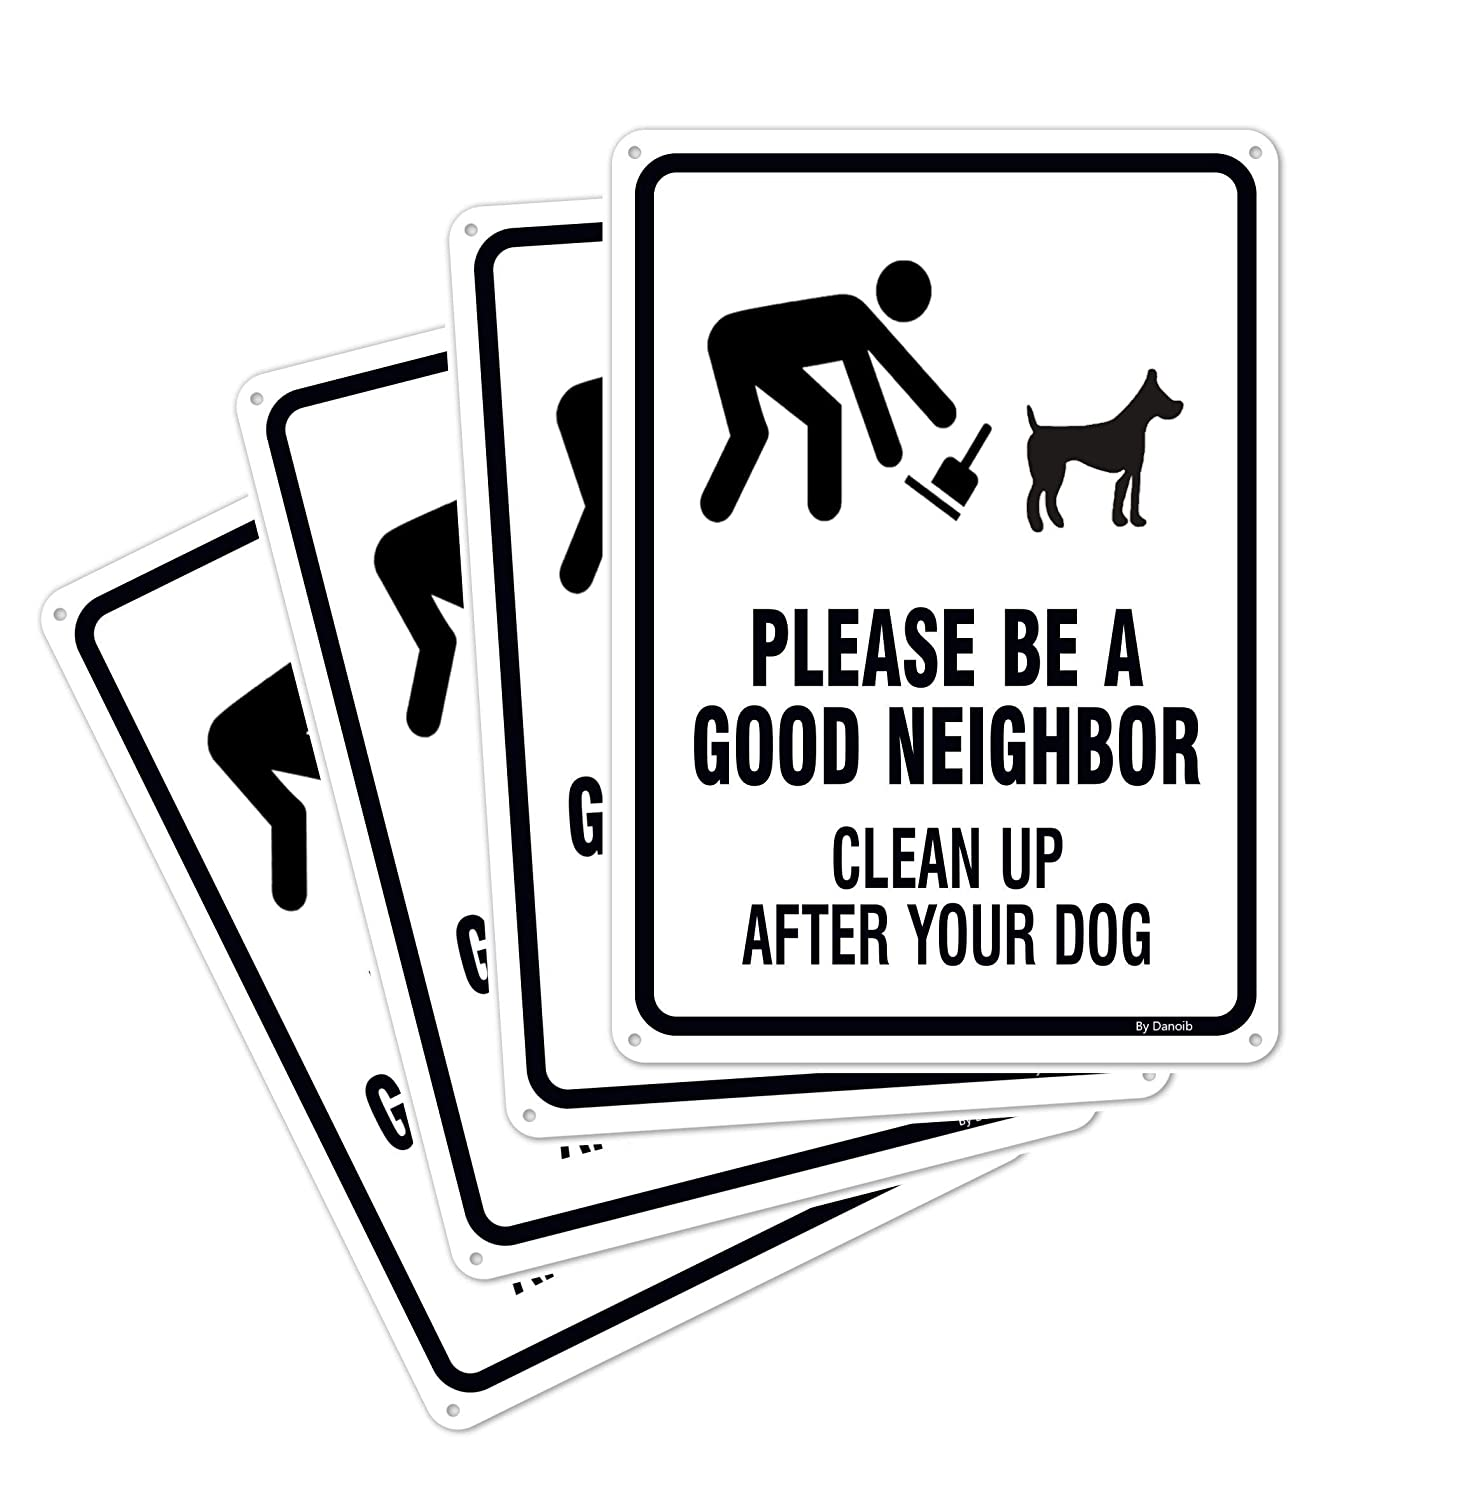 4-Pack Please Be a Good Neighbor - Clean Up After Your Dog Signs 14